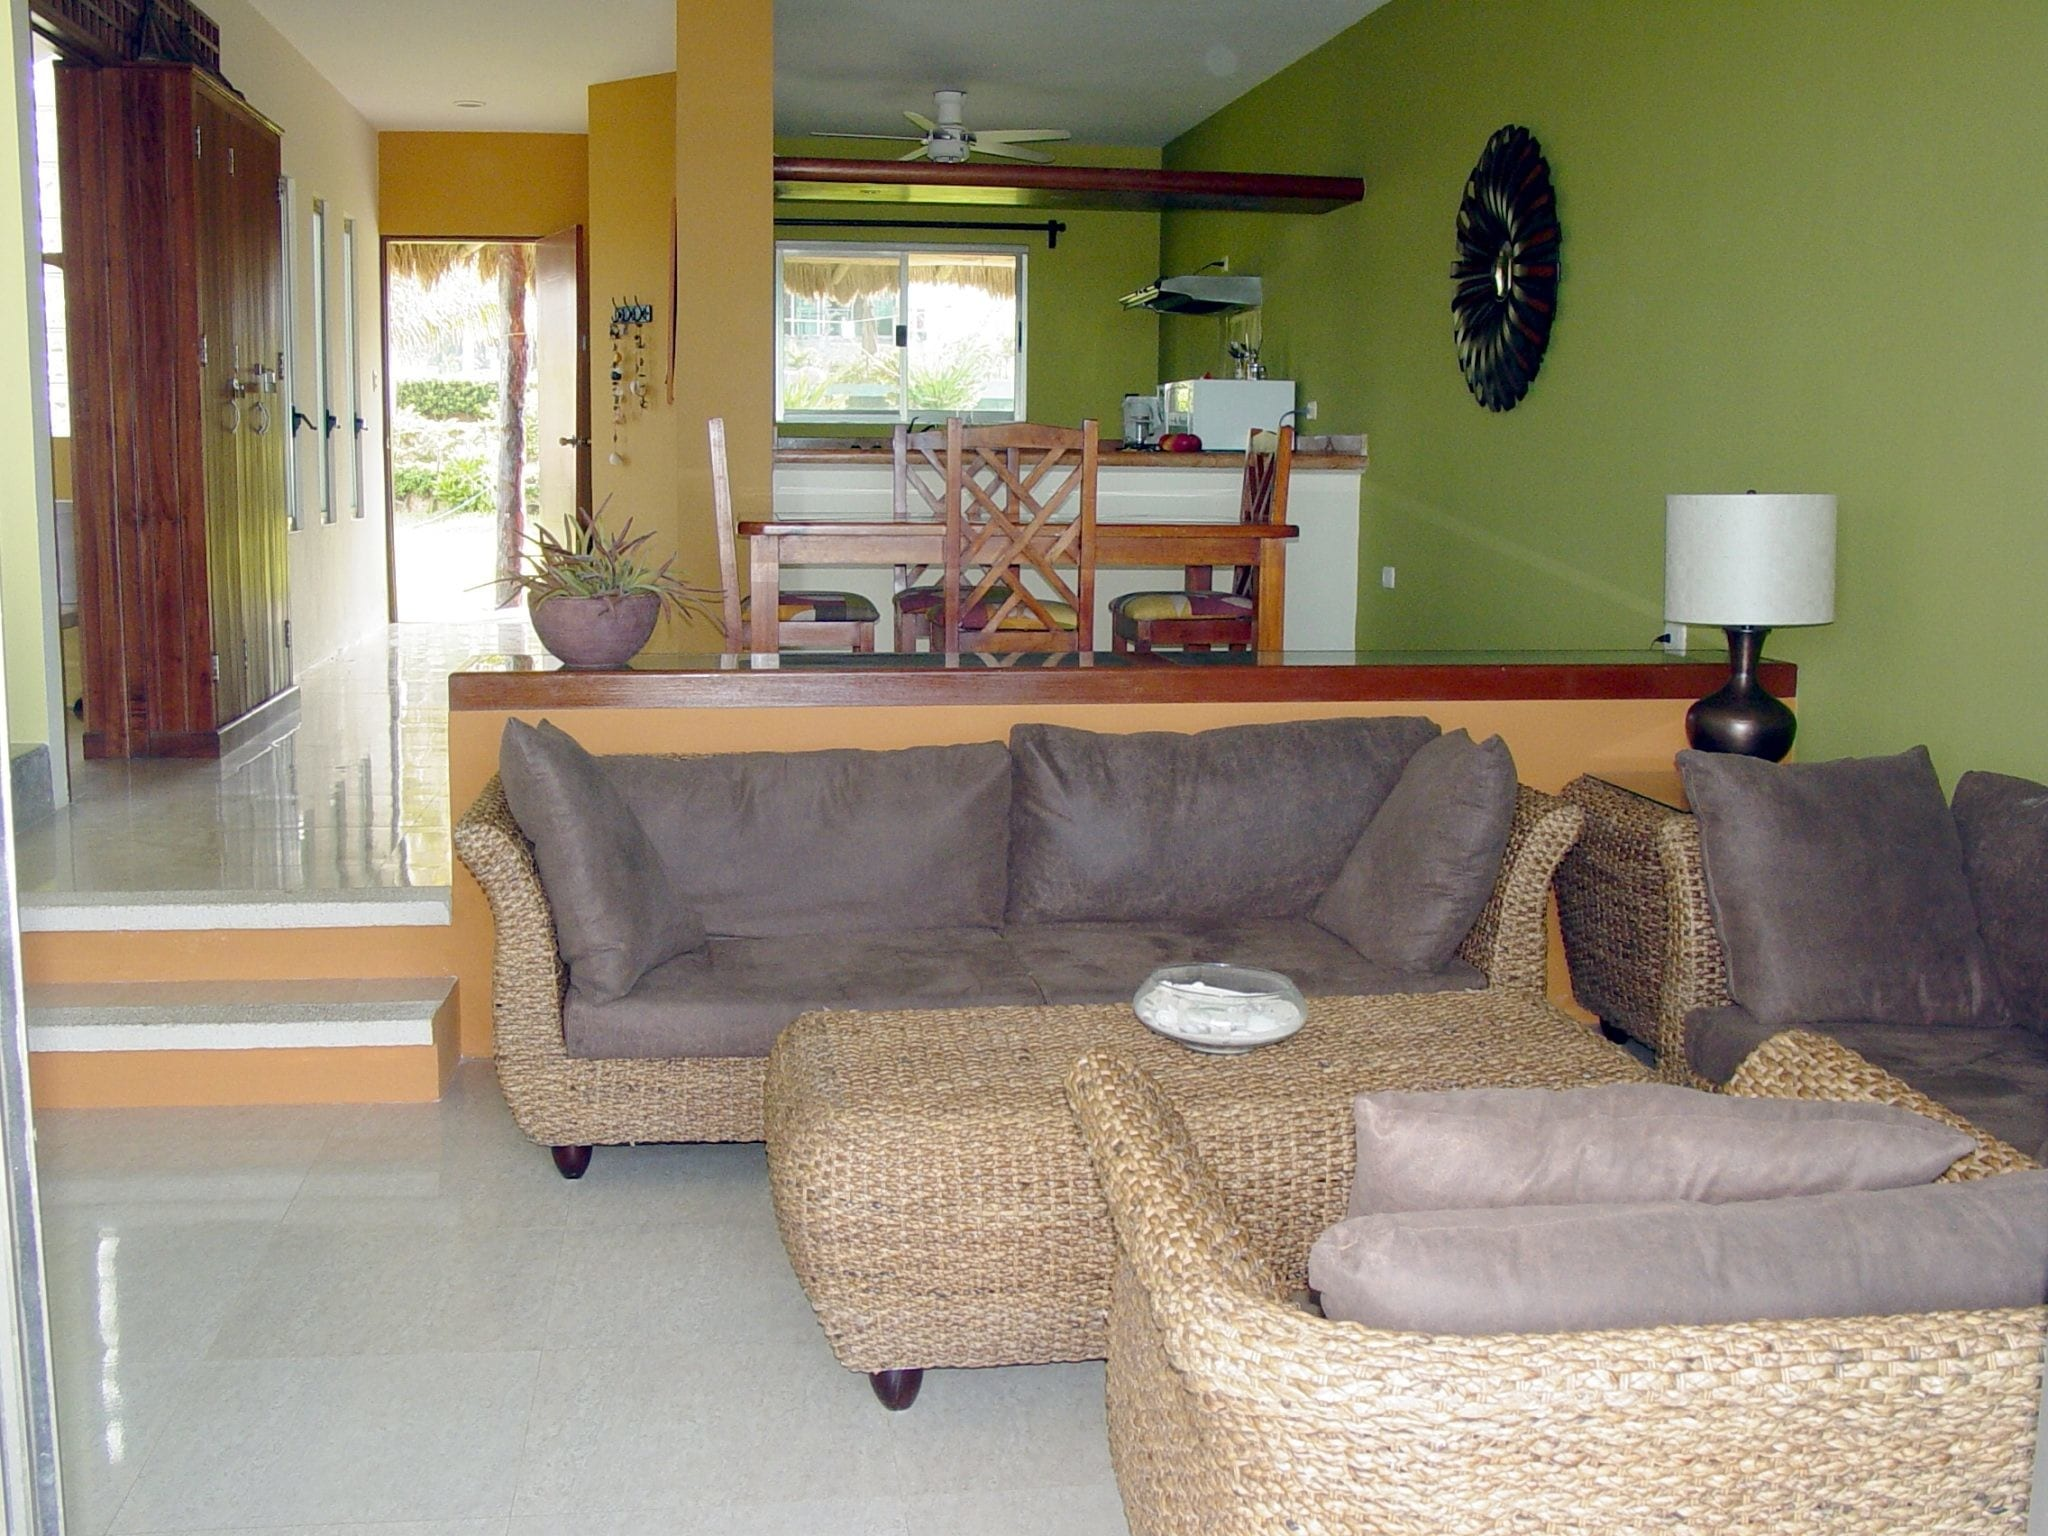 Casita B - Living Room, Dining Area, and Kitchen